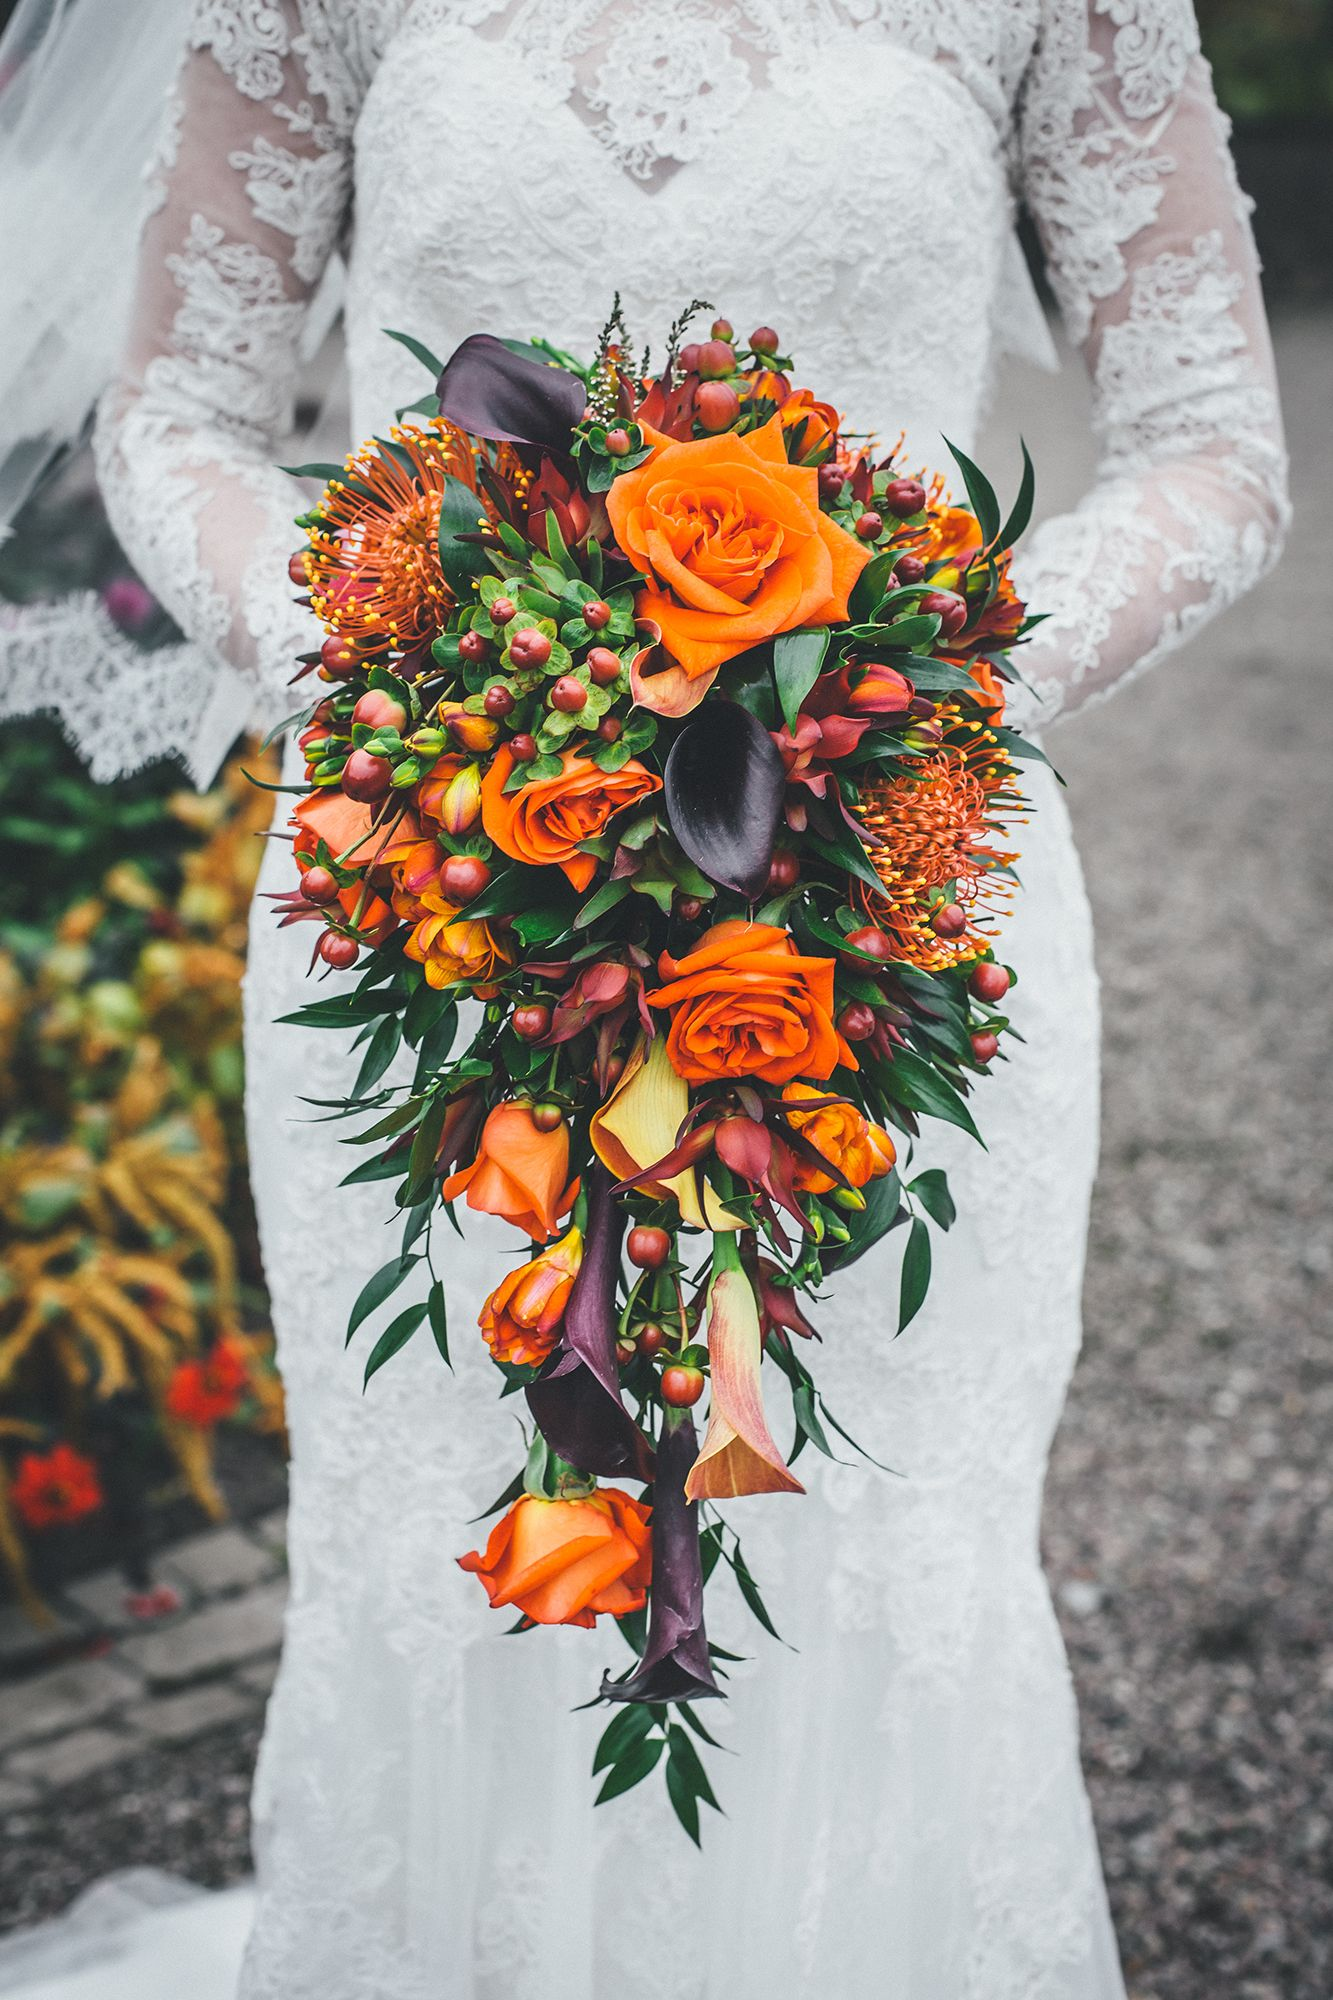 20 best fall wedding flowers wedding bouquets and centerpieces 20 best fall wedding flowers wedding bouquets and centerpieces for fall junglespirit Image collections